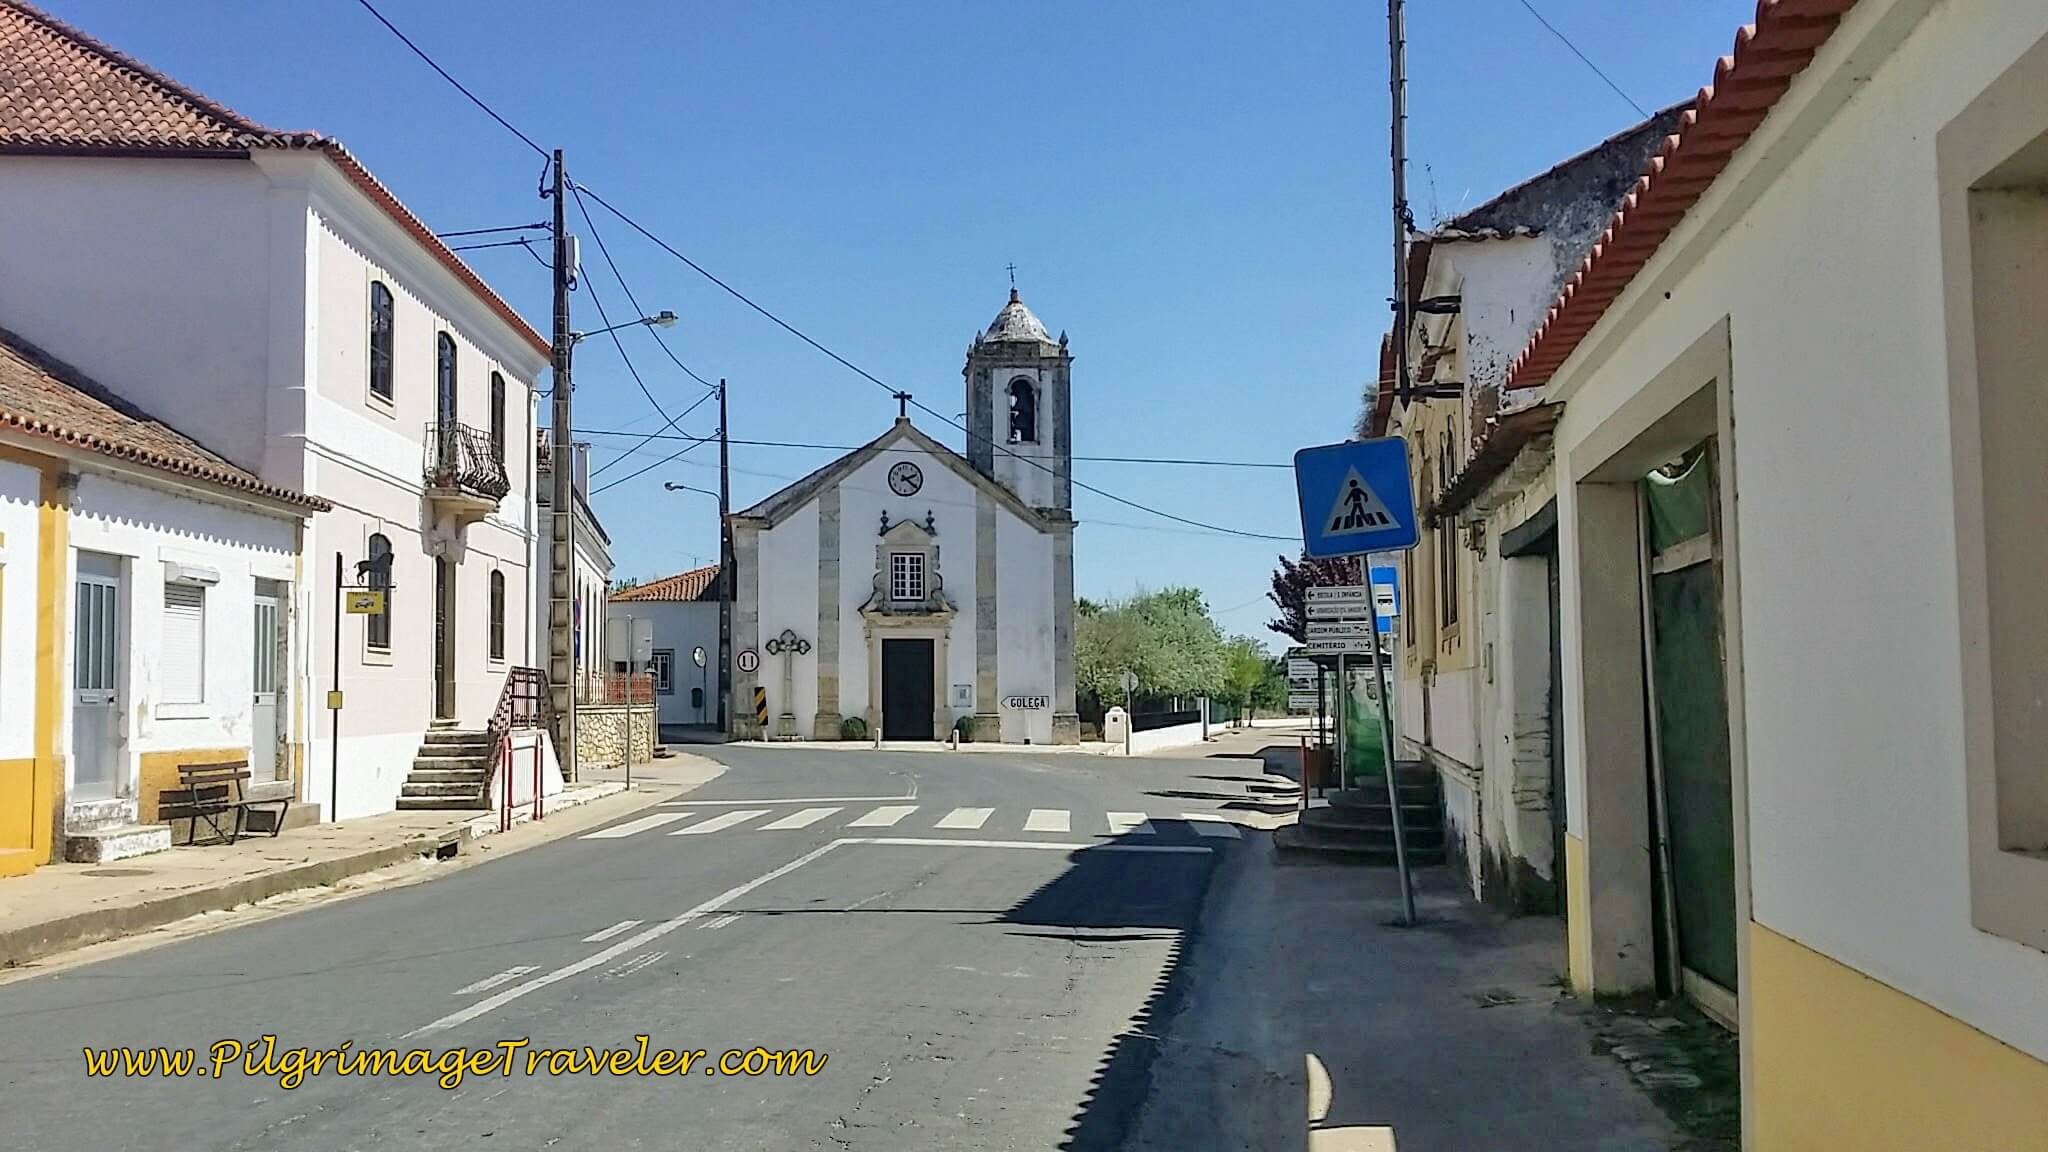 Church in Pombalinho Where Routes Diverge - 2nd Option for a Shortcut